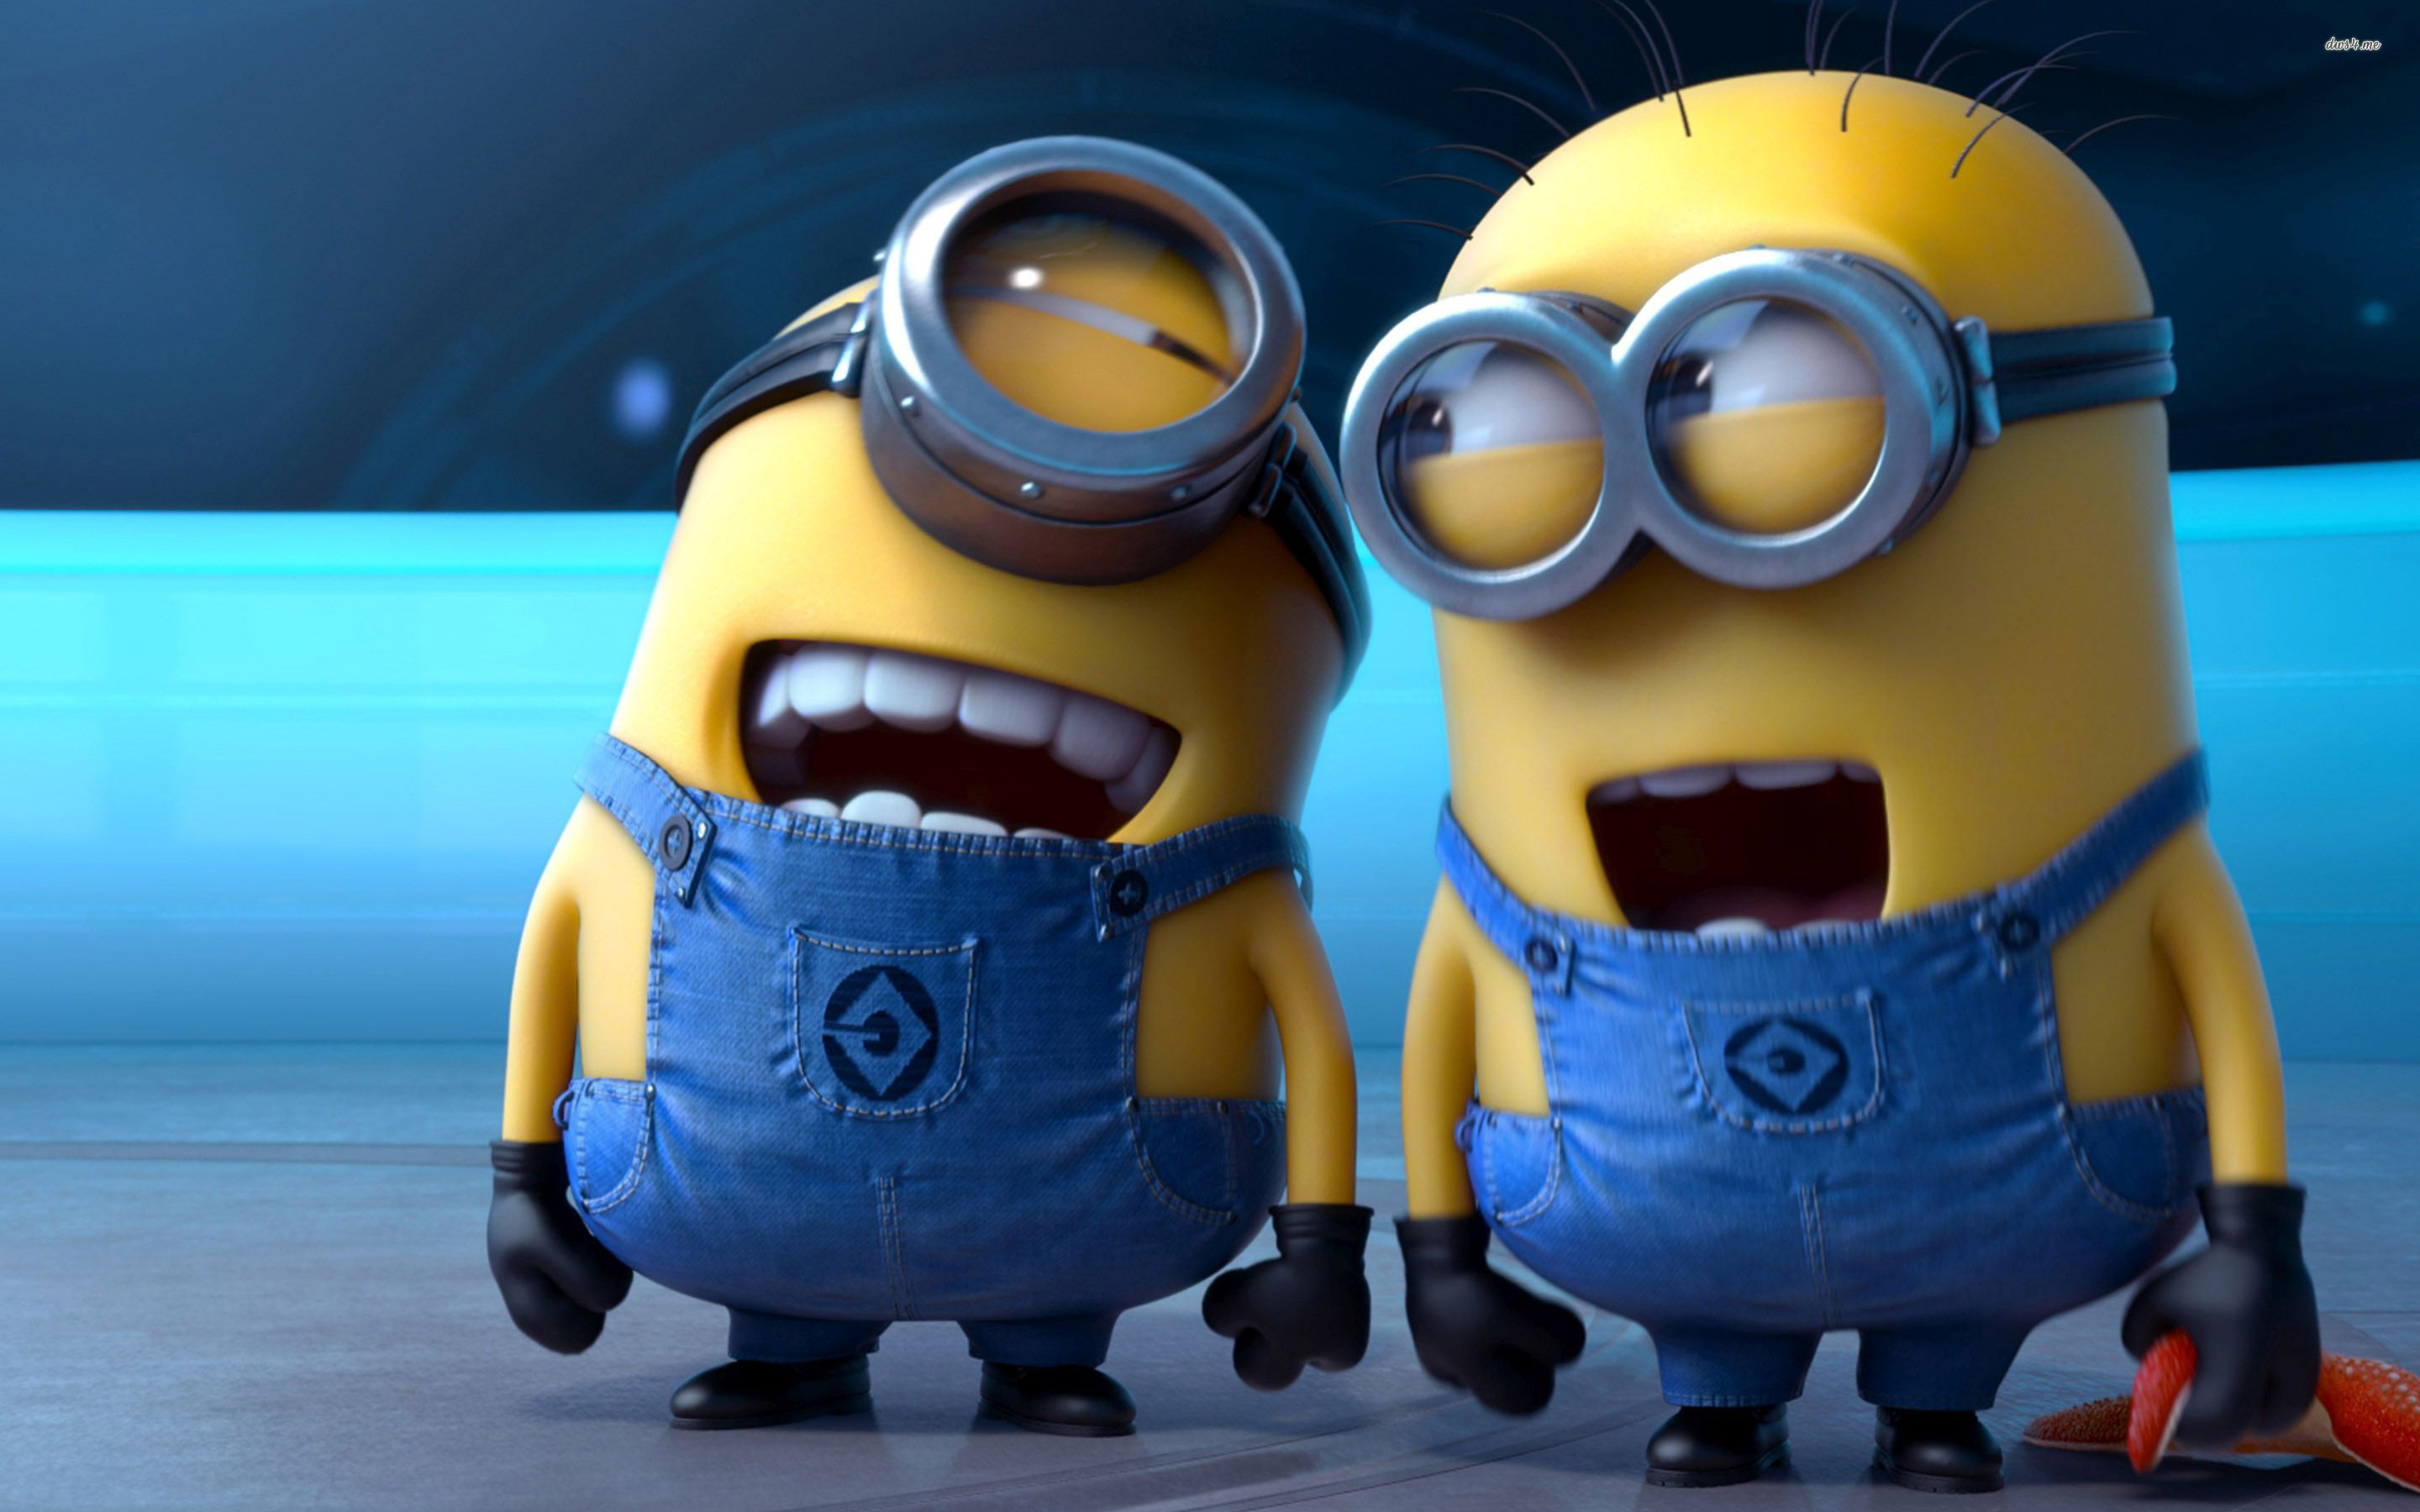 Minions Hd Minions Hd Wallpapers For Desktop 59346 Hd Wallpaper Backgrounds Download Funny minions wallpapers minions minions backgrounds 1920×1107. minions hd minions hd wallpapers for